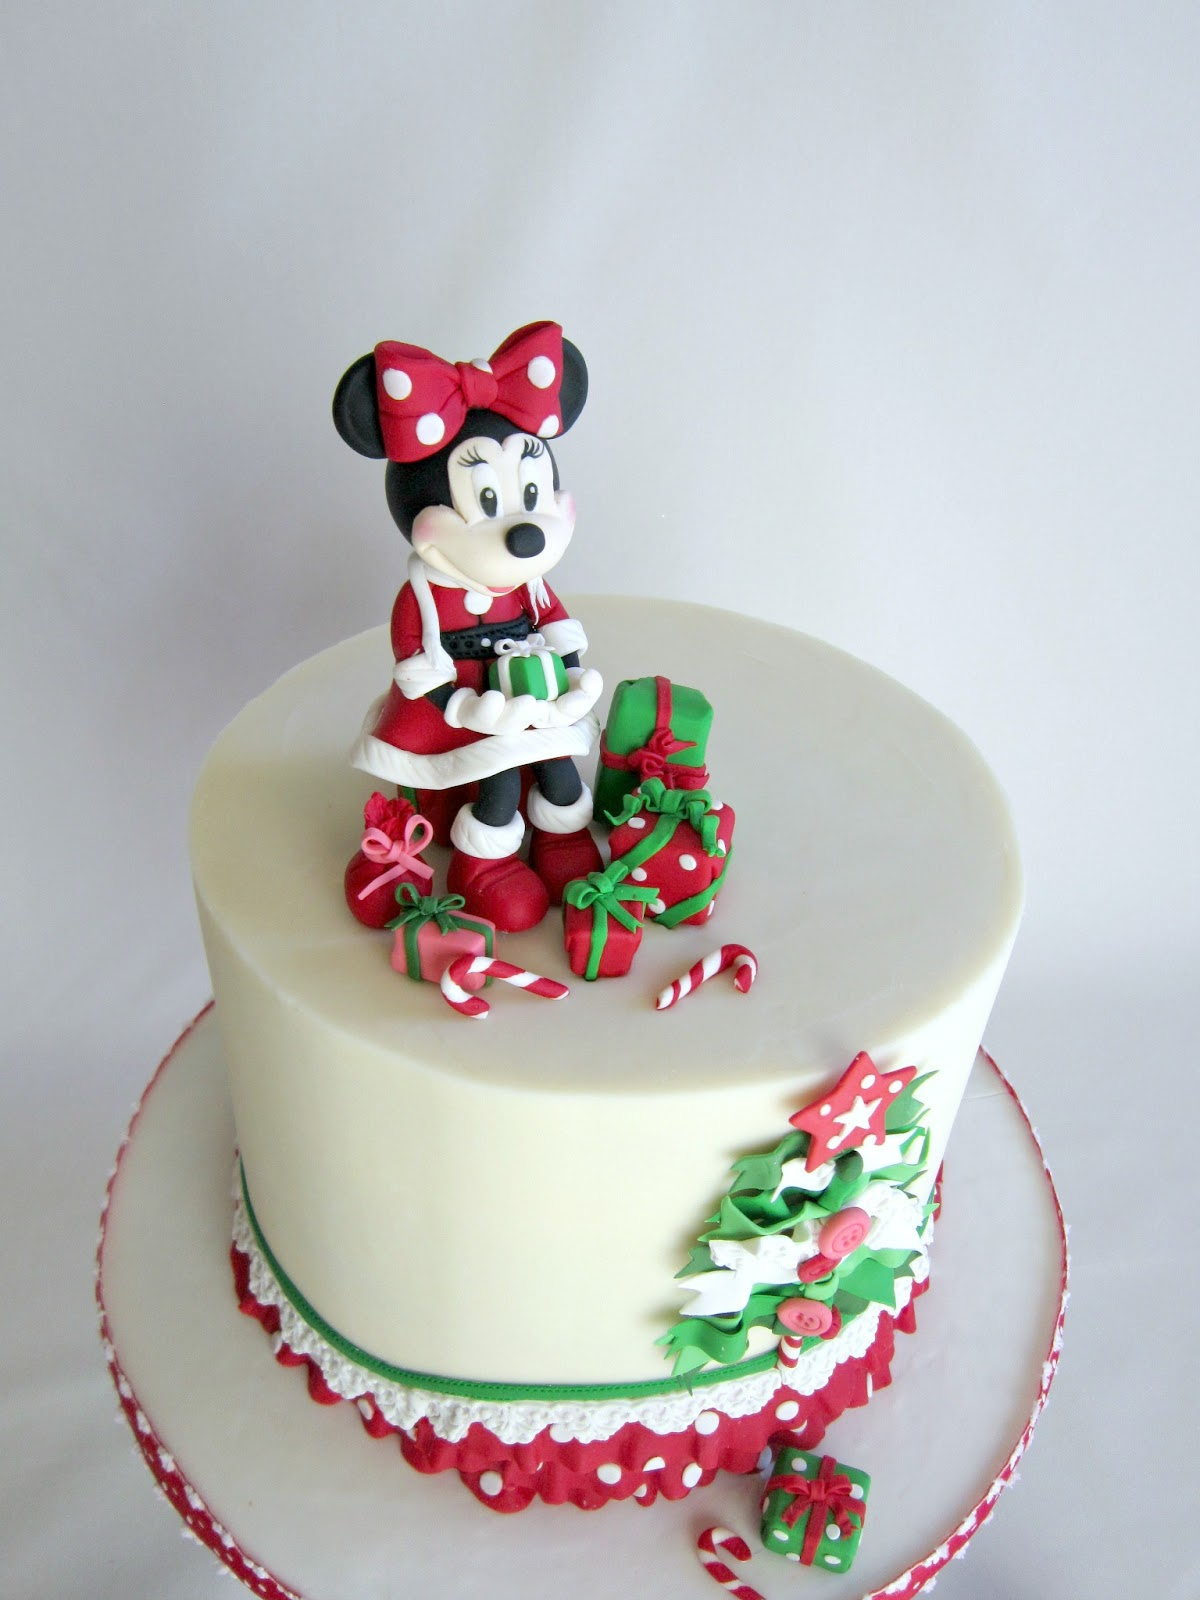 Christmas Birthday Cake.Delectable Cakes Adorable Minnie Mouse Christmas Birthday